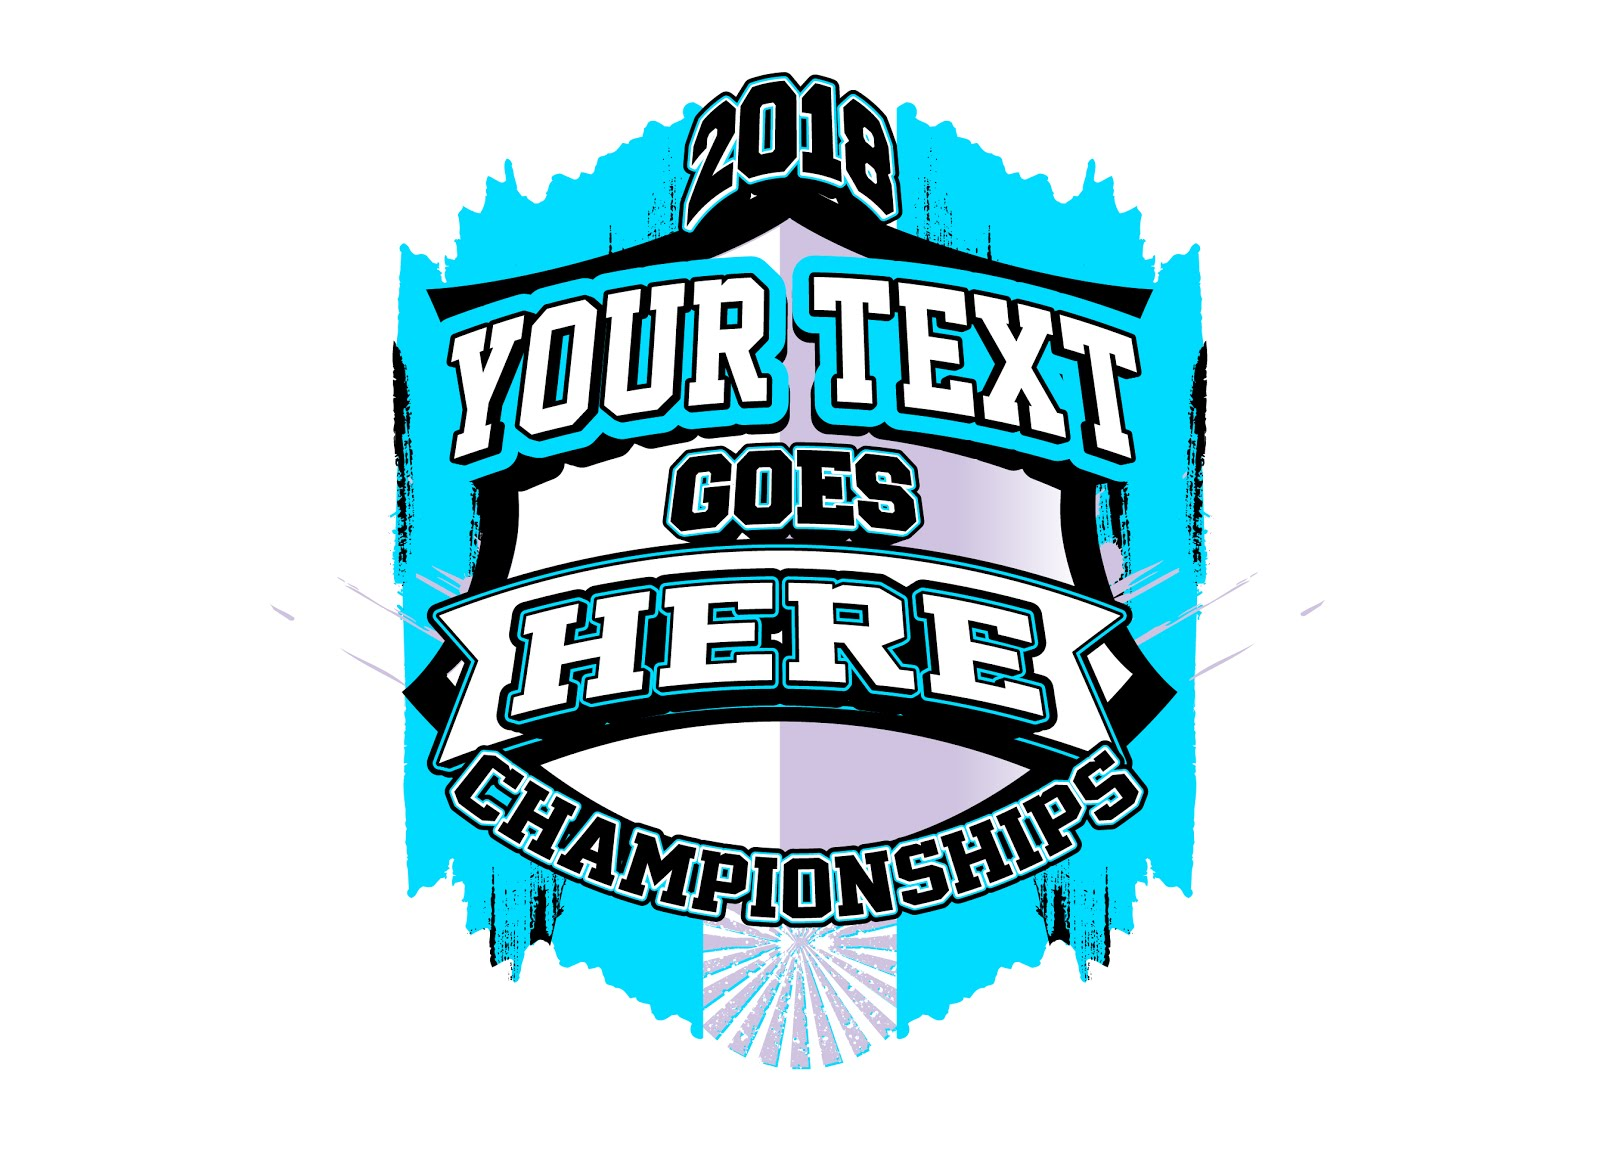 CHAMPIONSHIPS - FULLY CUSTOMIZABLE VECTOR LOGO DESIGN, ADJUSTABLE TEXT AND COLOR